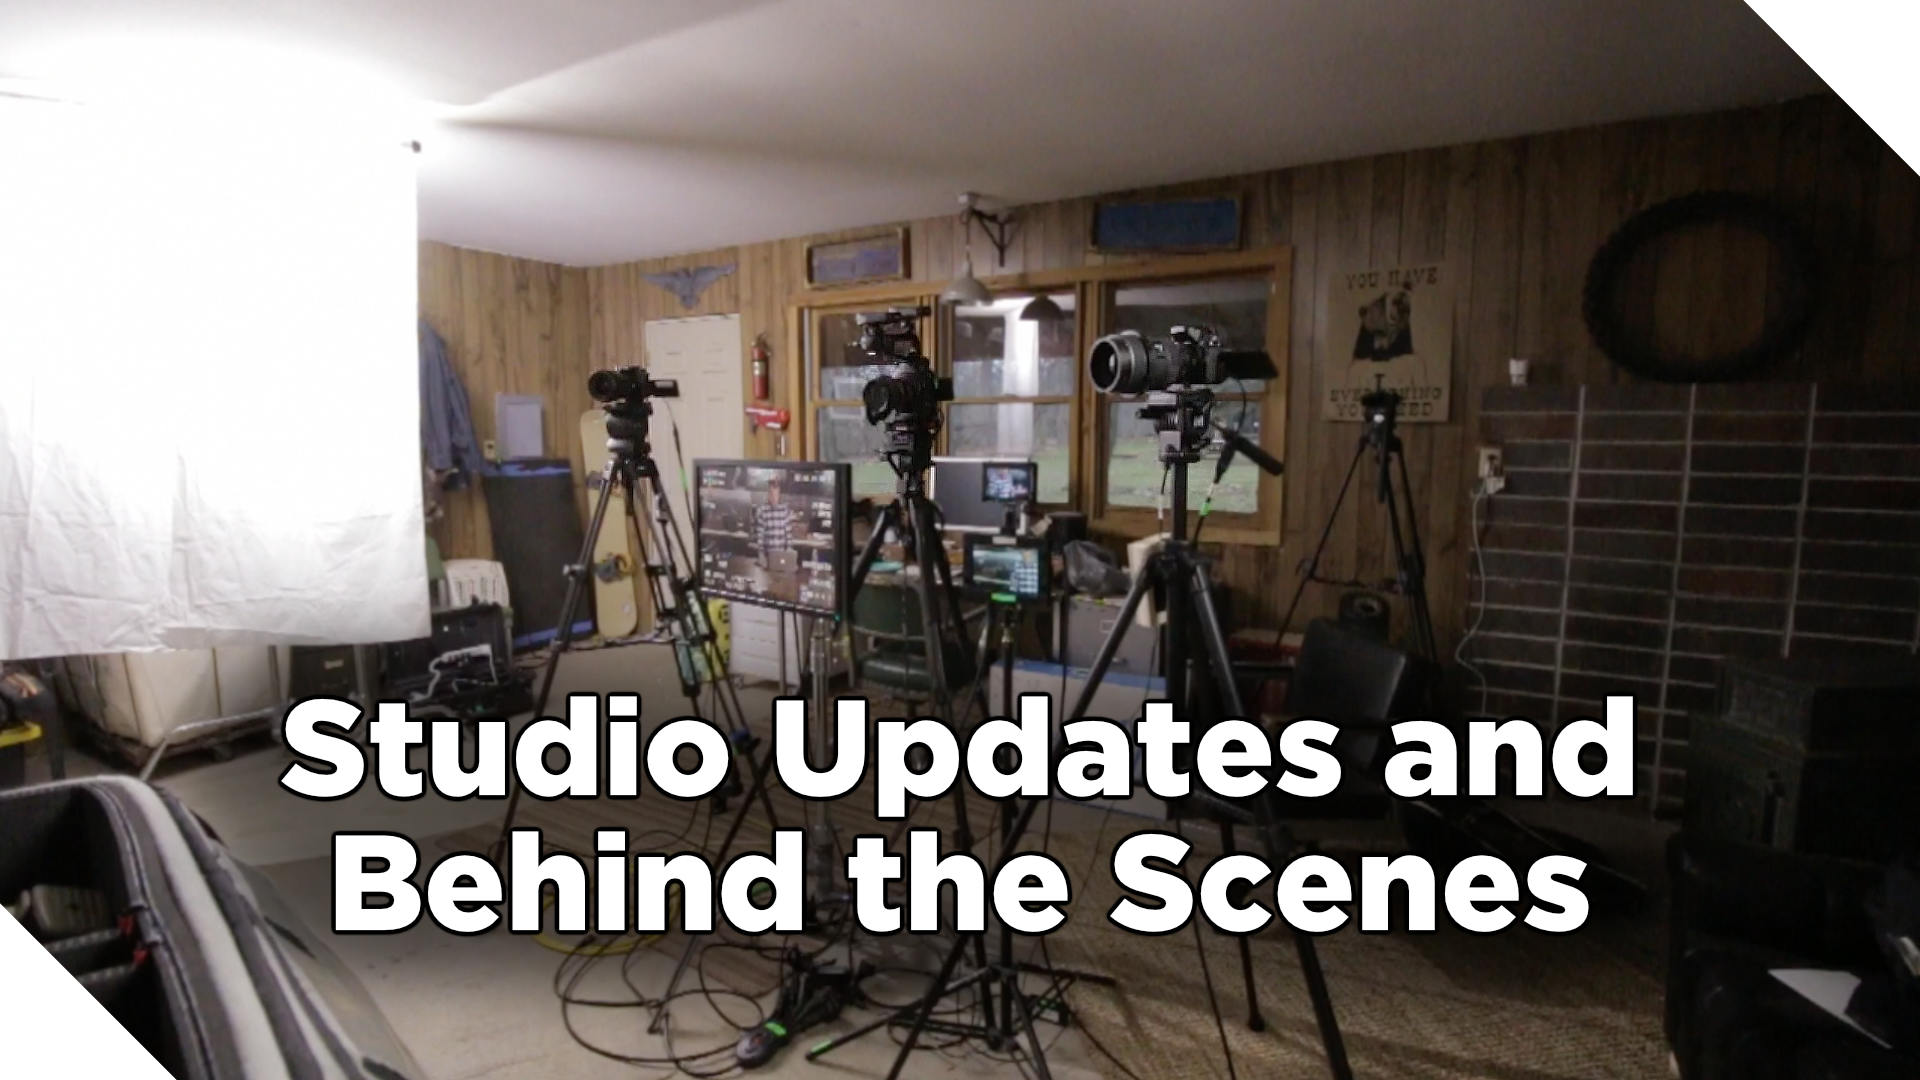 Studio Updates and Behind the Scenes of the Corporate Video Guide